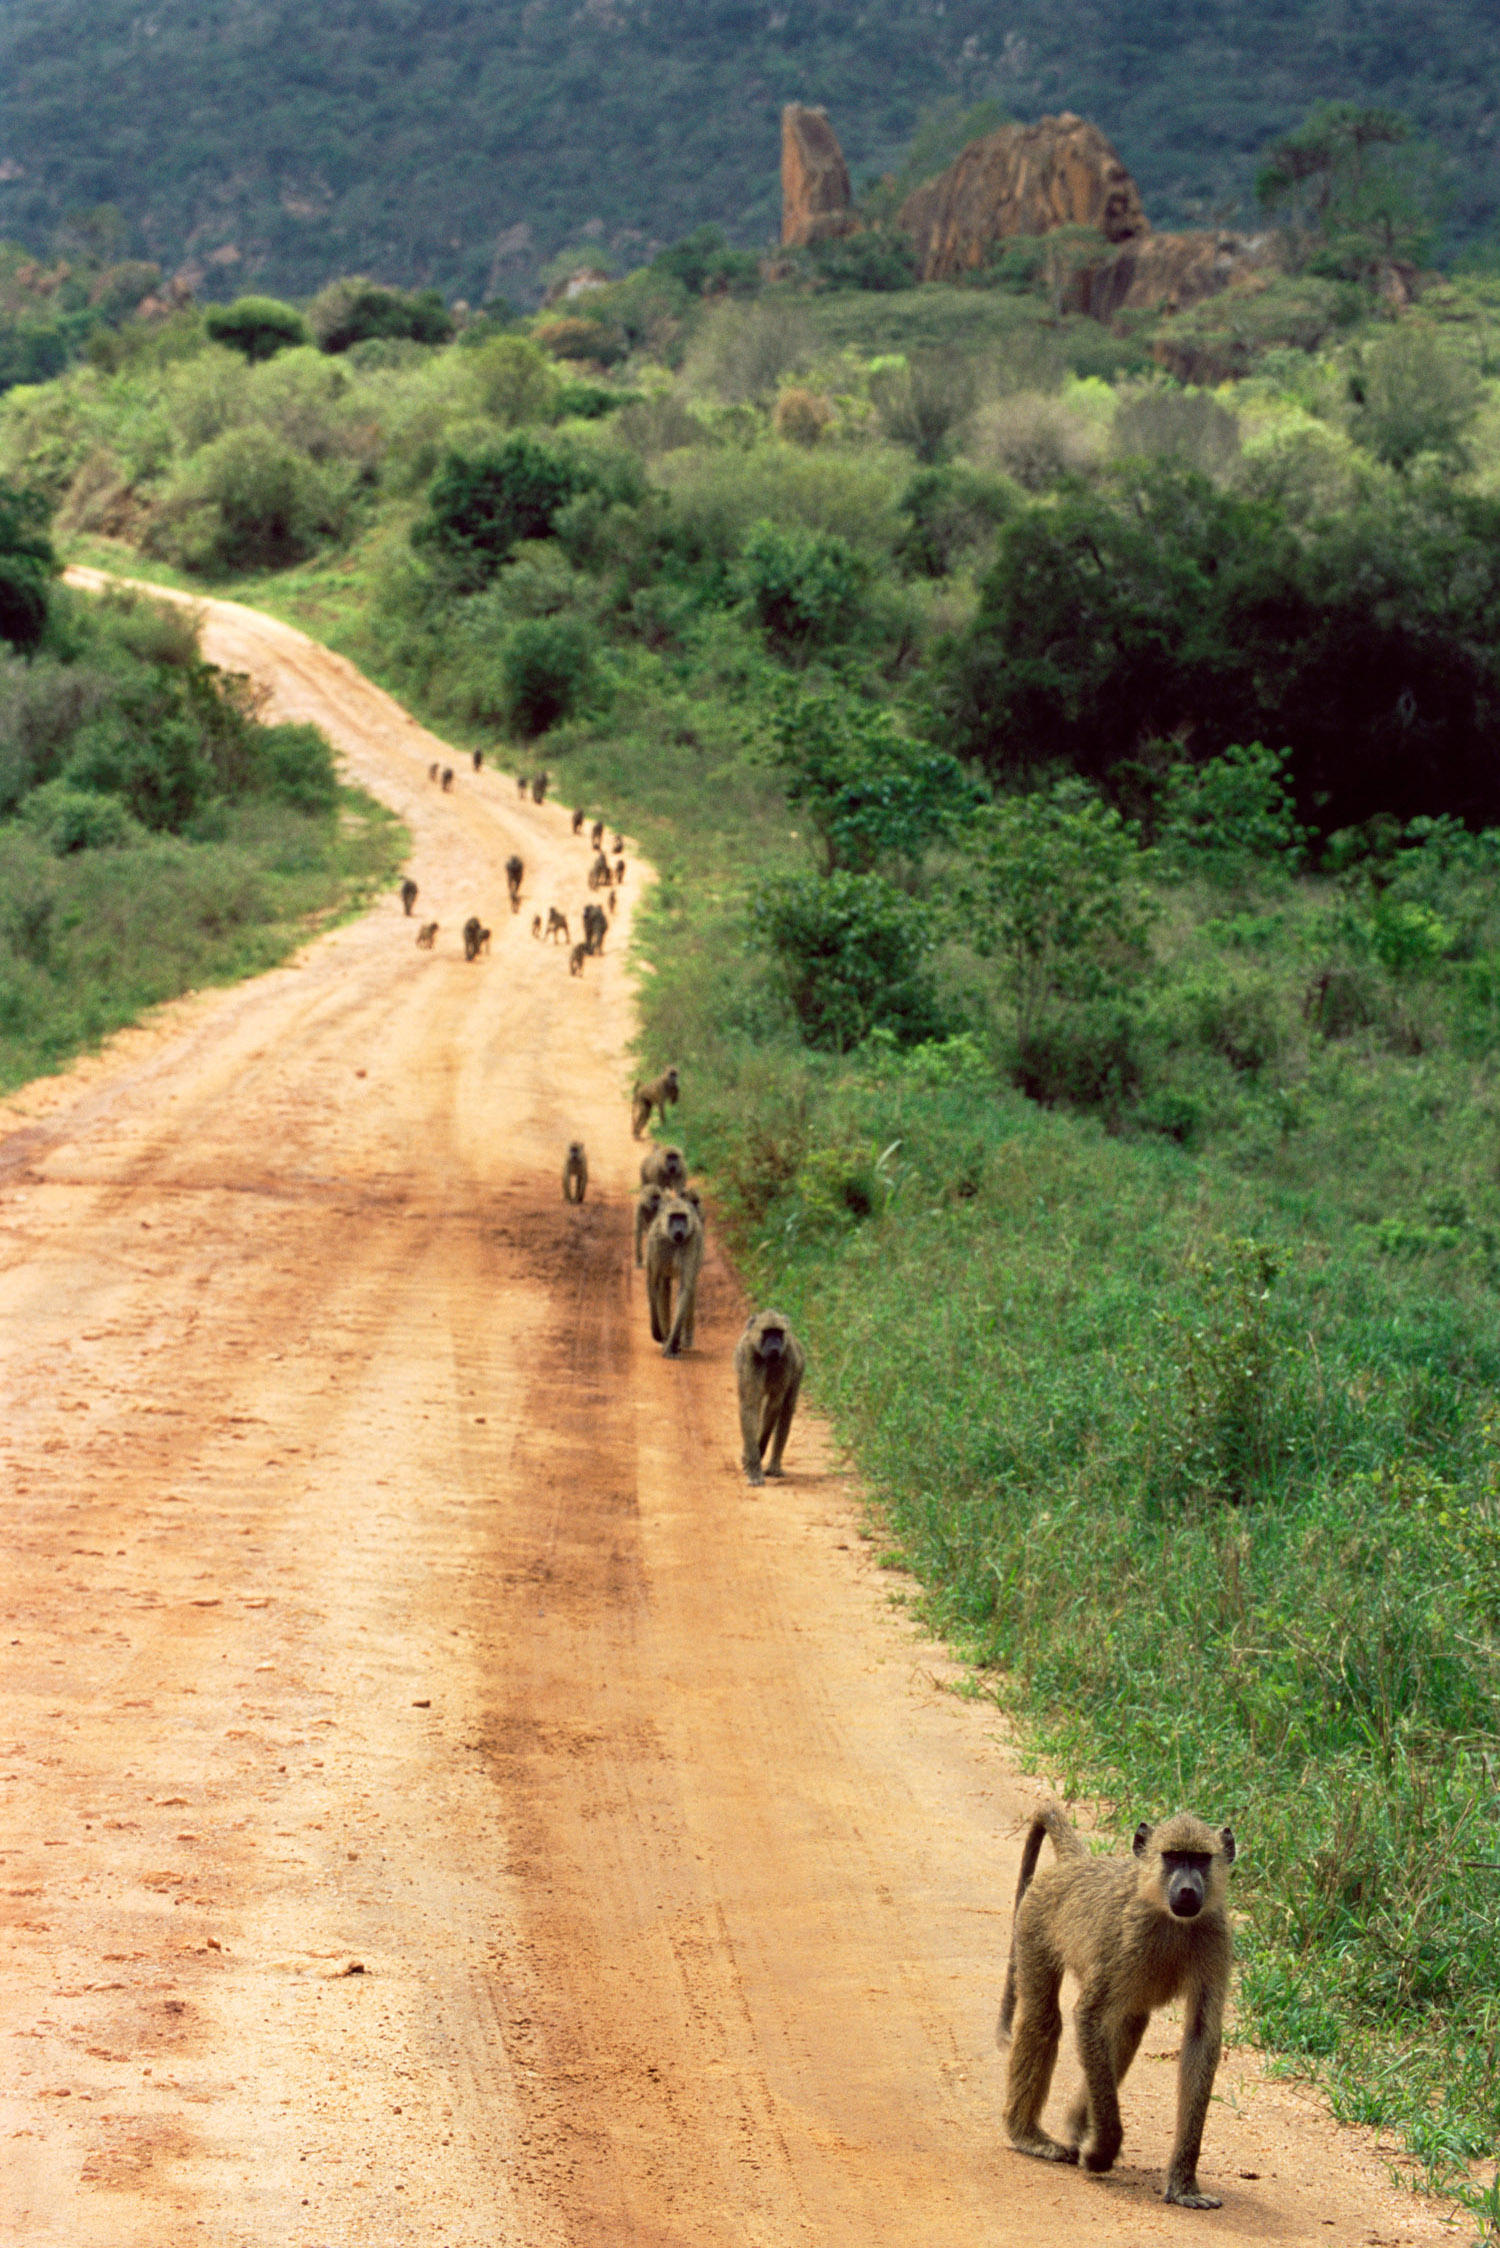 Yellow baboon troop on track, Tsavo West National Park, Kenya